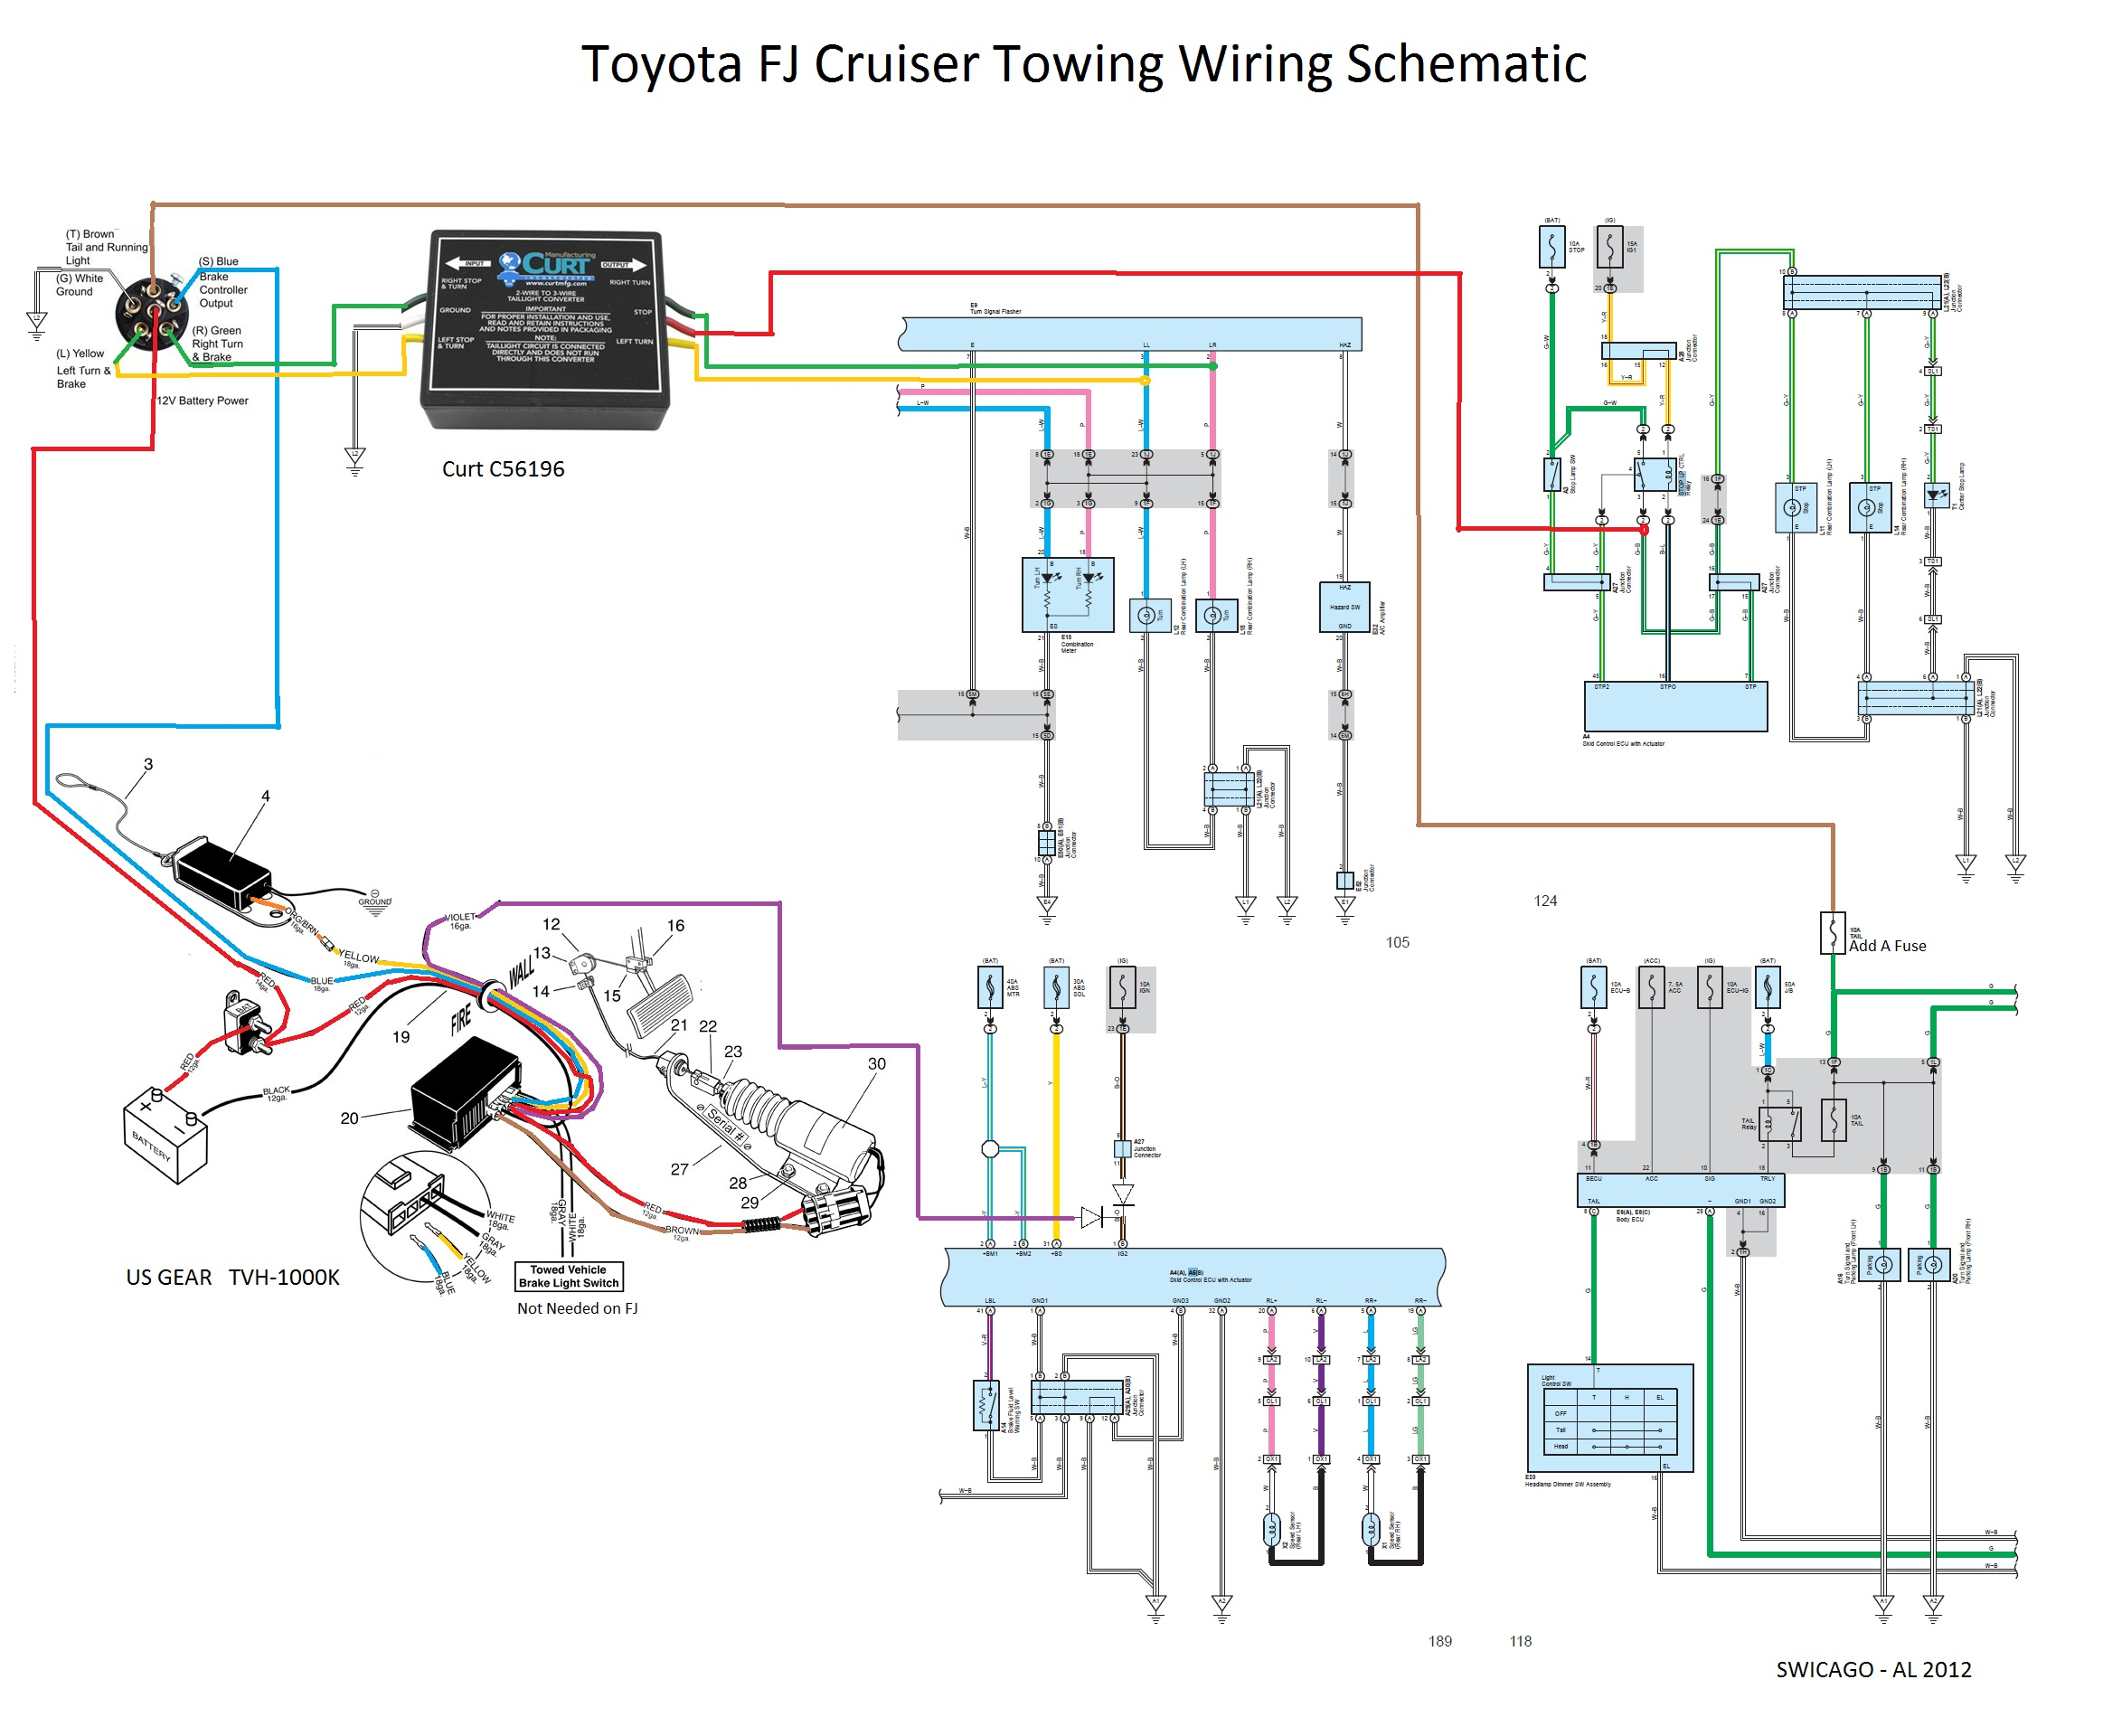 2018 Toyota Tundra Trailer Wiring Diagram from wholefoodsonabudget.com